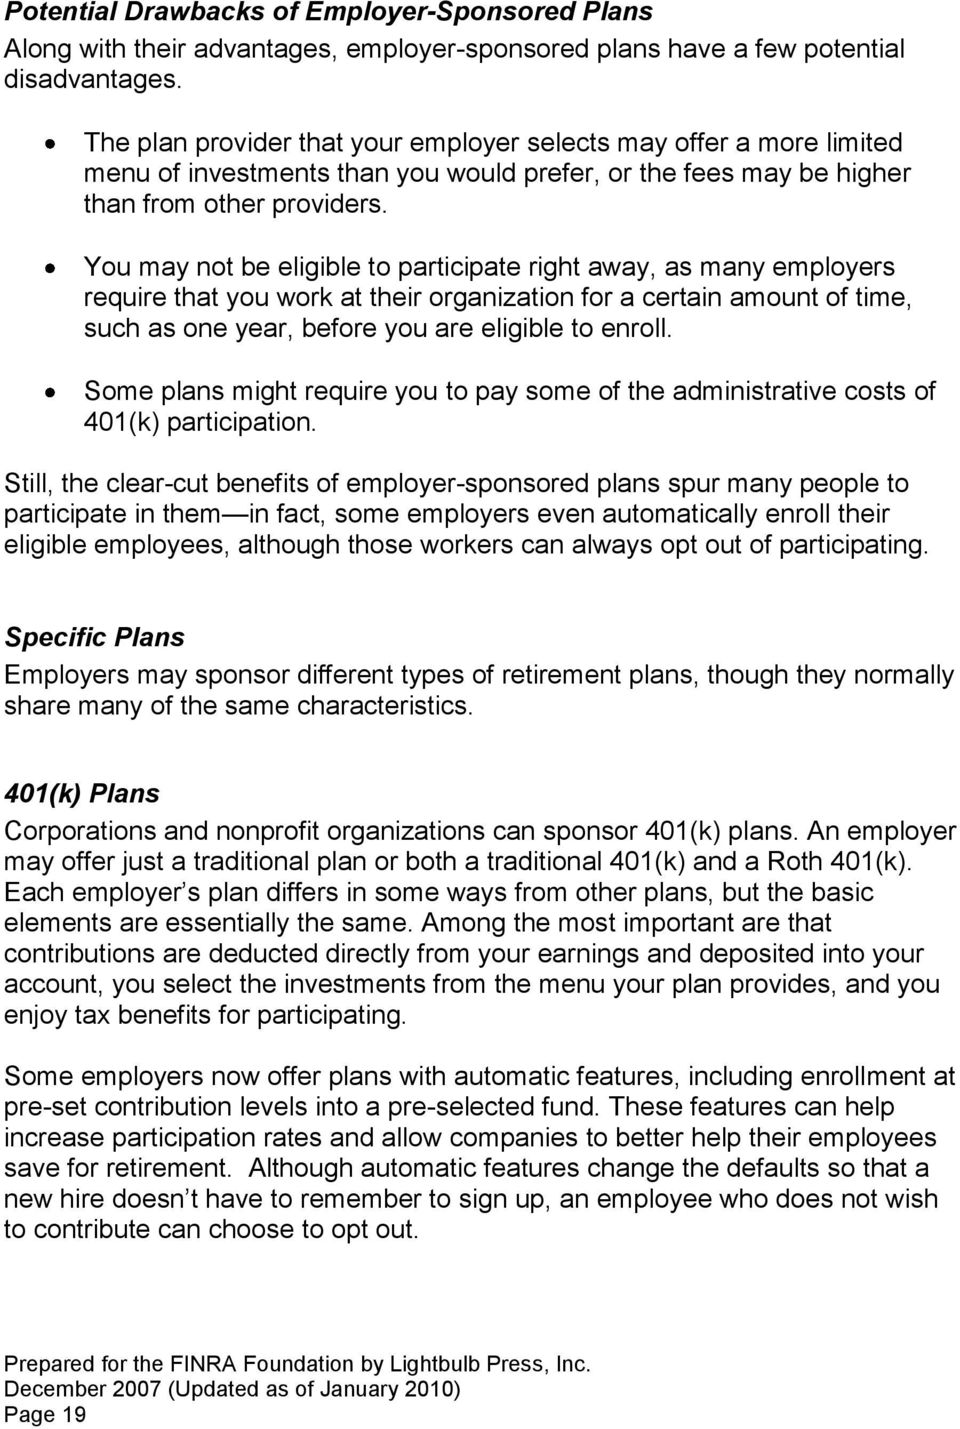 You may not be eligible to participate right away, as many employers require that you work at their organization for a certain amount of time, such as one year, before you are eligible to enroll.